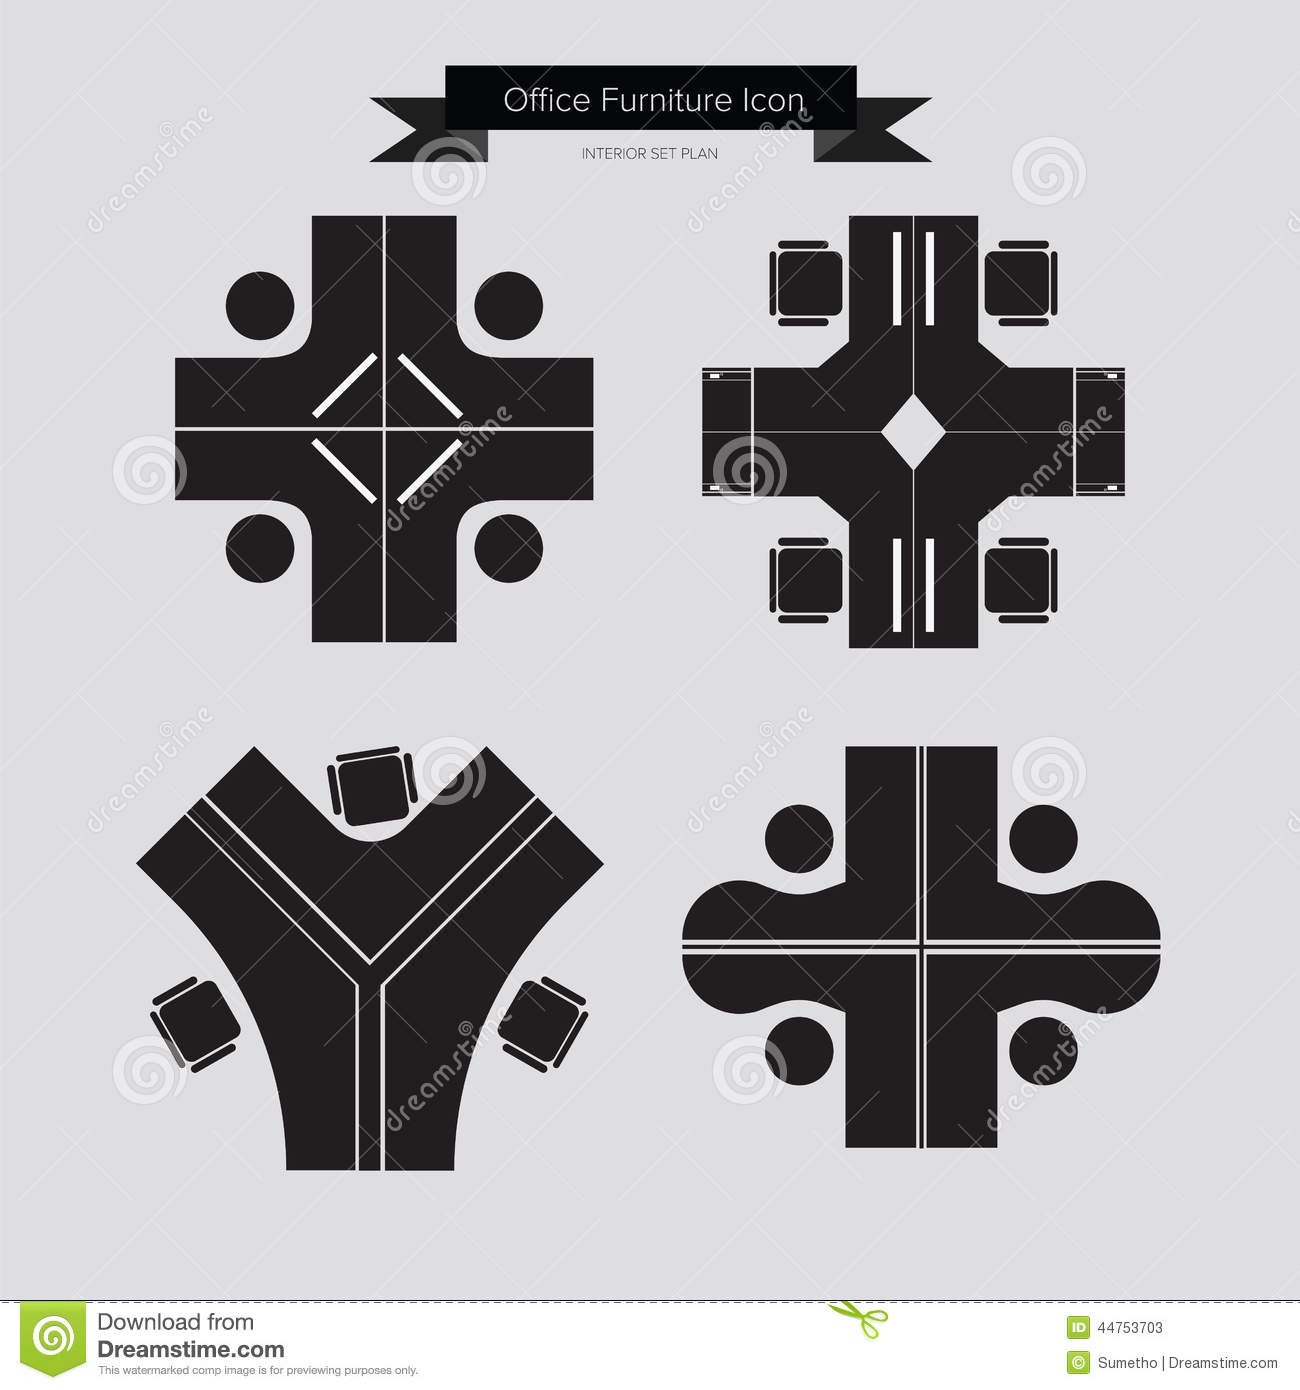 Office Furniture Icon Stock Vector Illustration Of